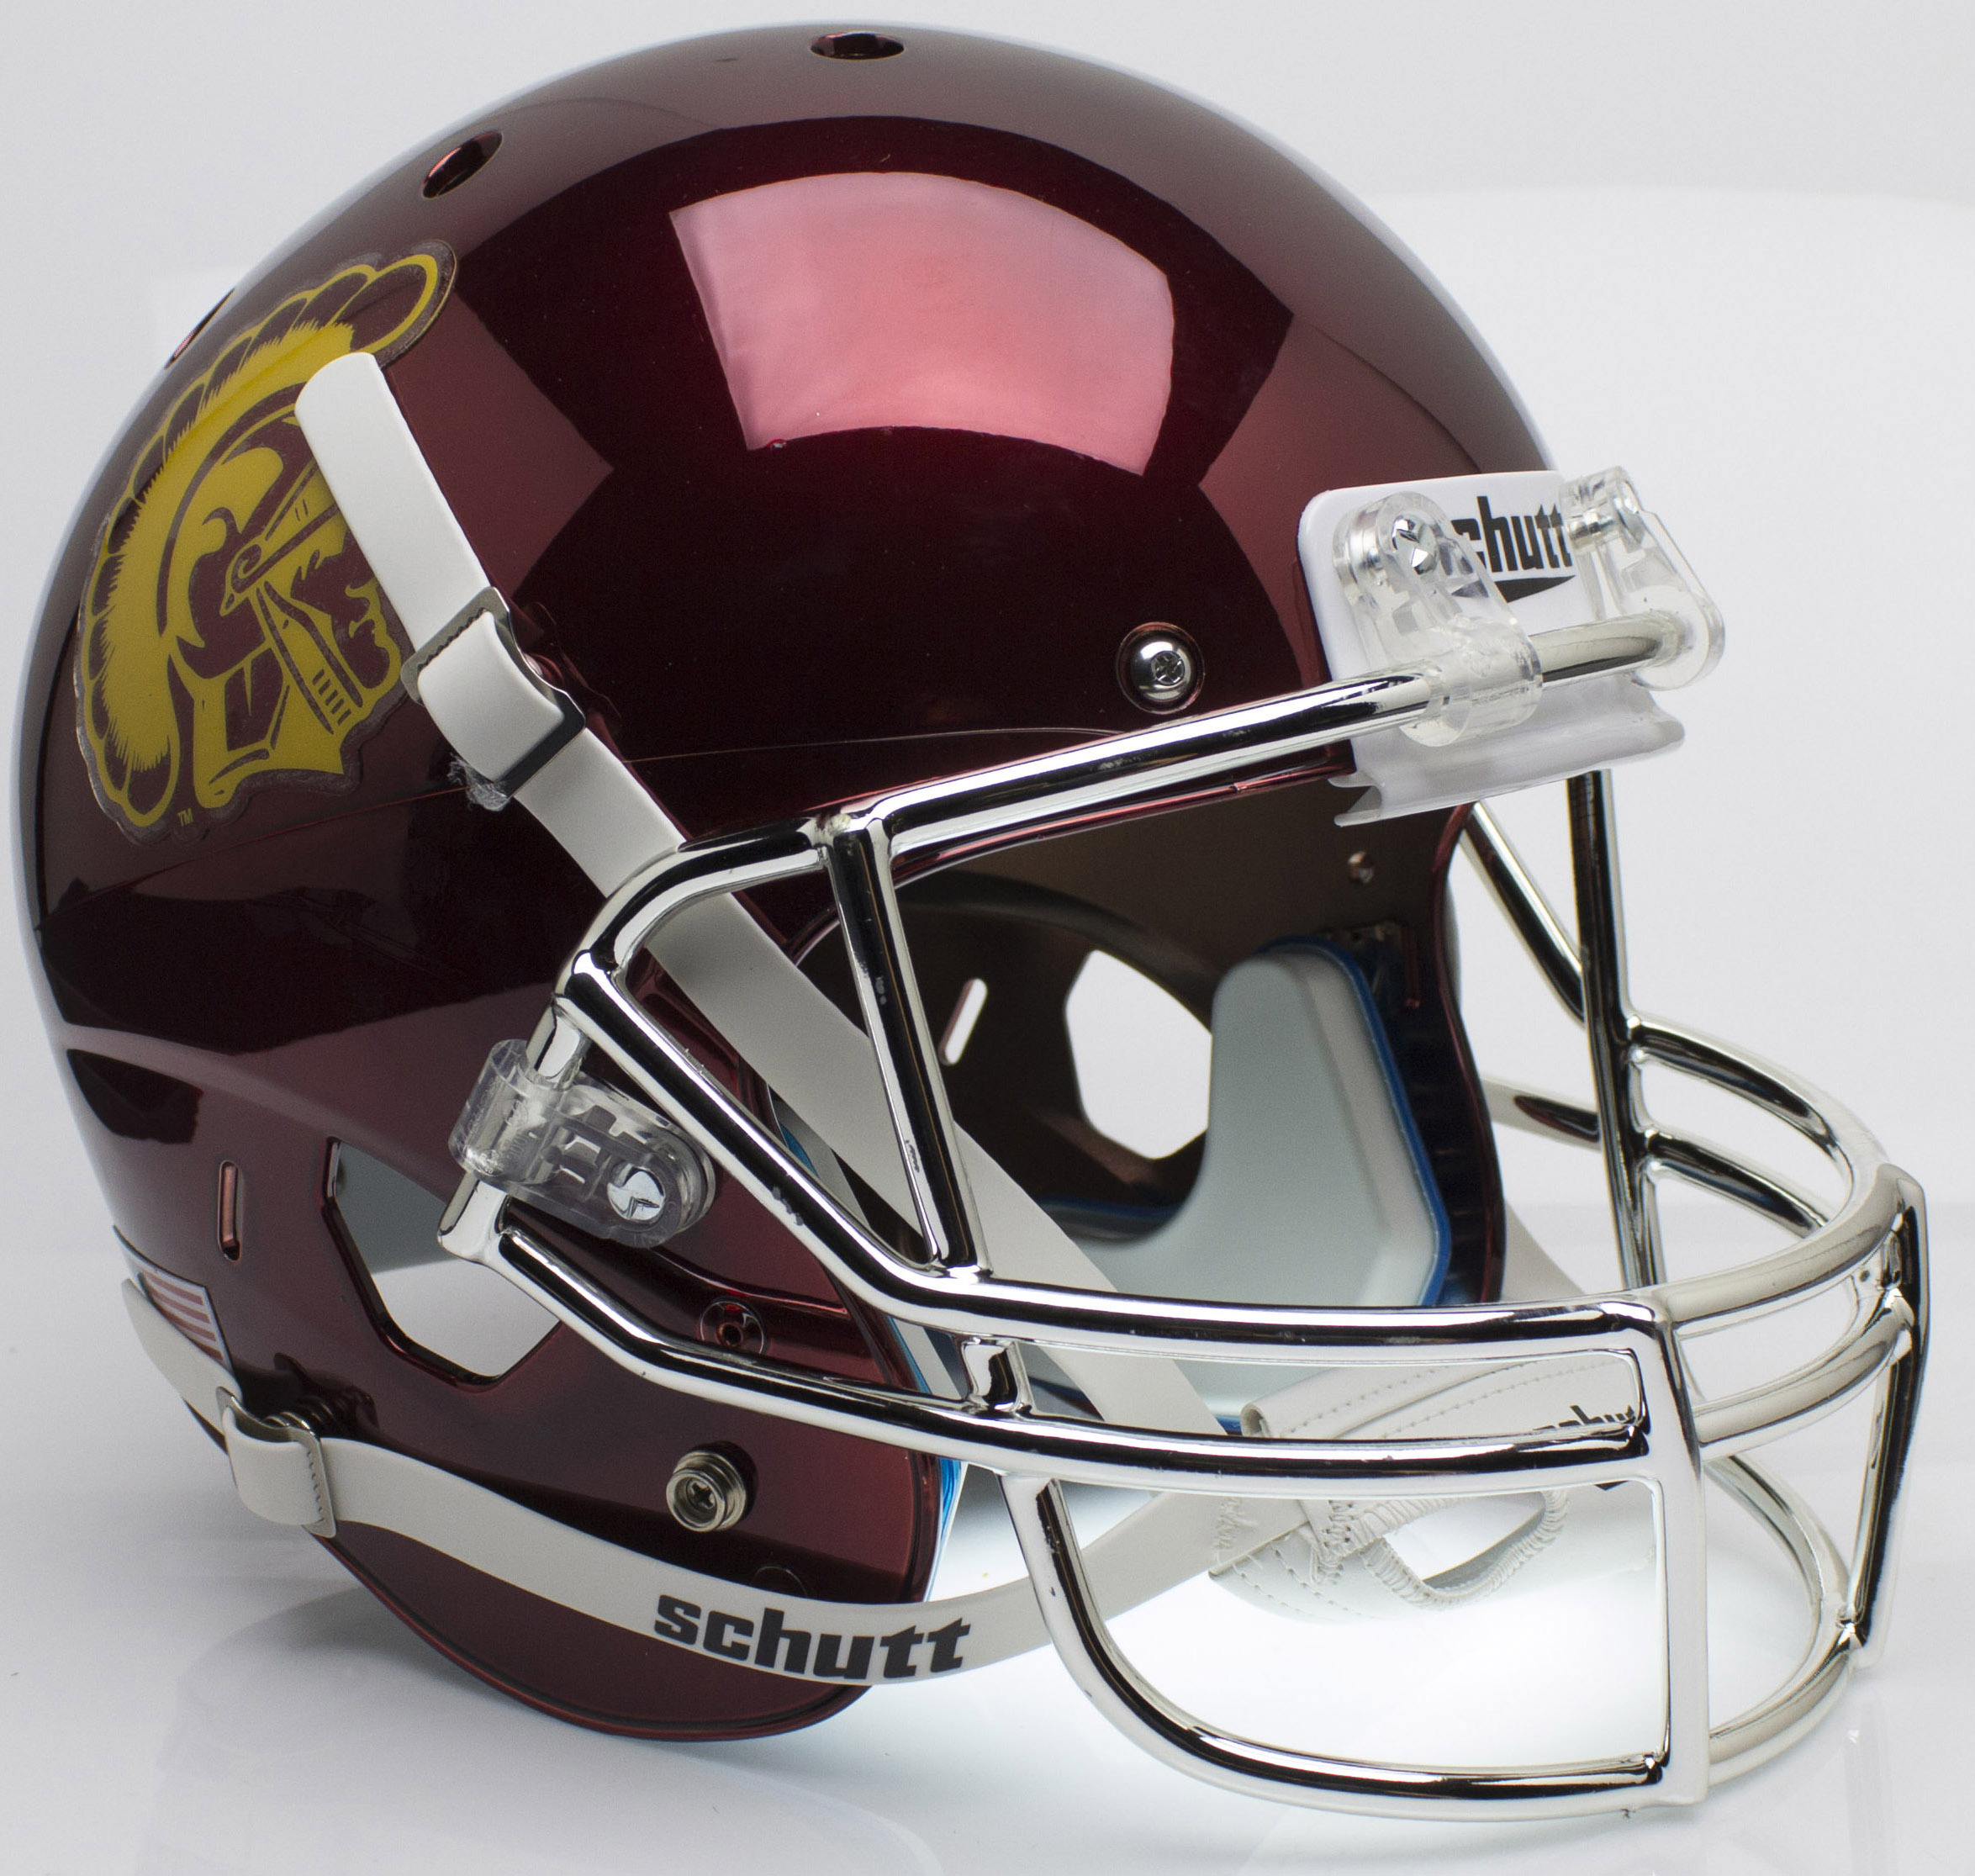 USC Trojans Full XP Replica Football Helmet Schutt <B>Chrome</B>